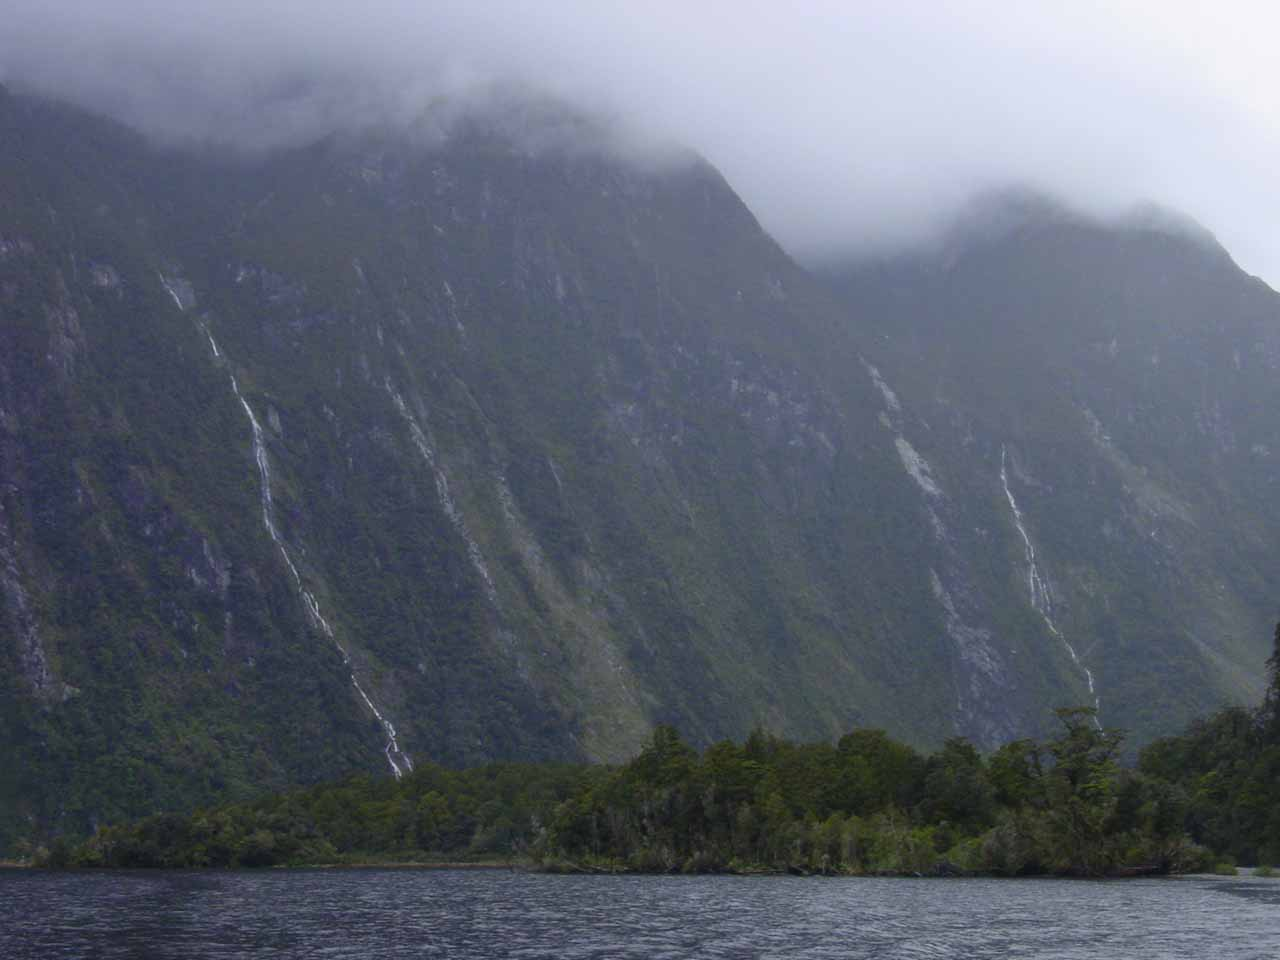 Looking across at some stringy ephemeral waterfalls lining Milford Sound